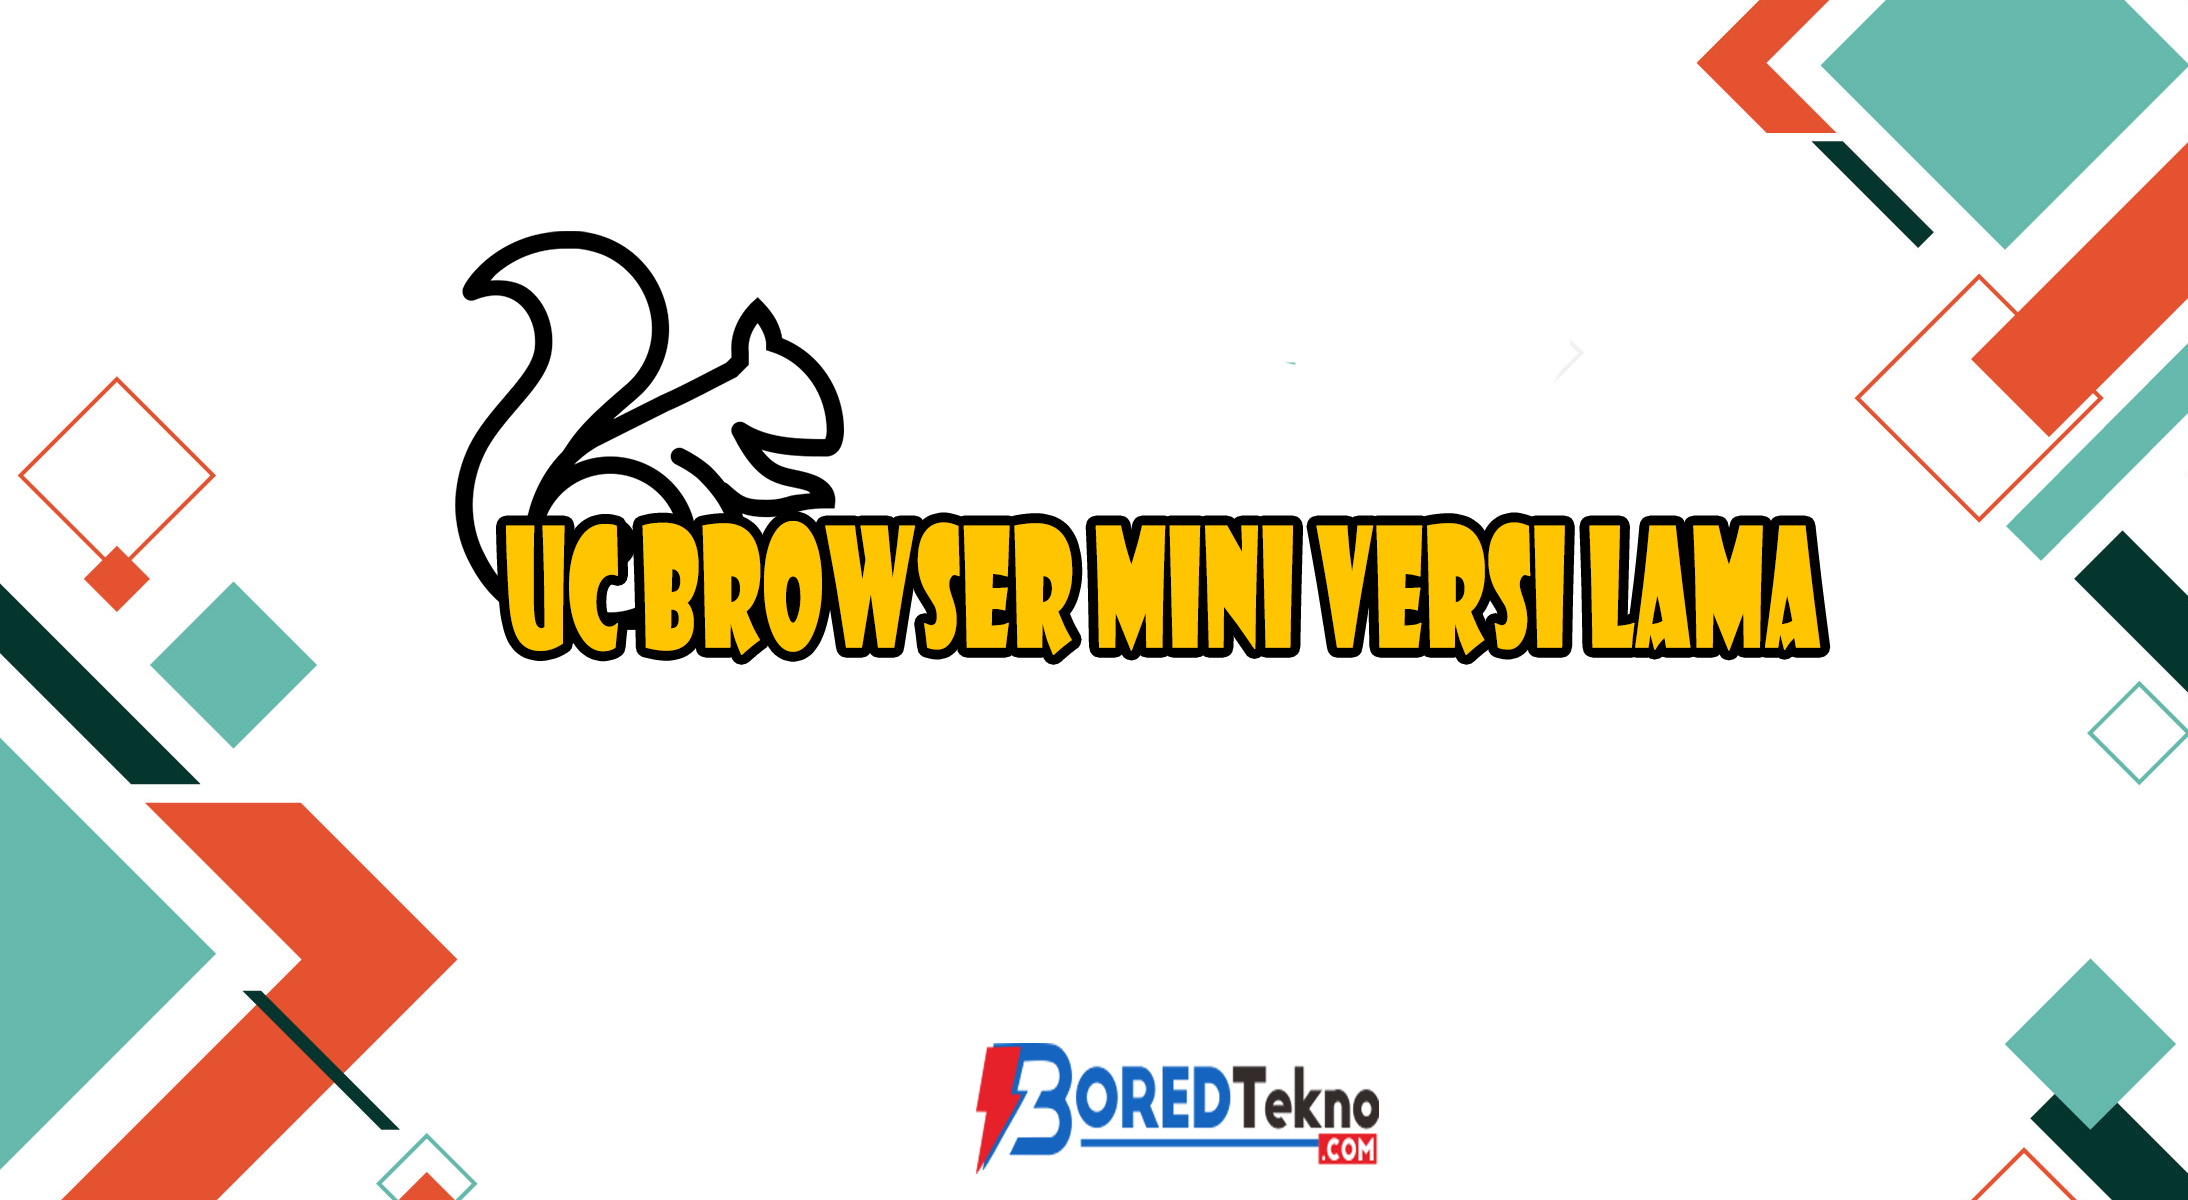 UC Browser Mini Versi Lama